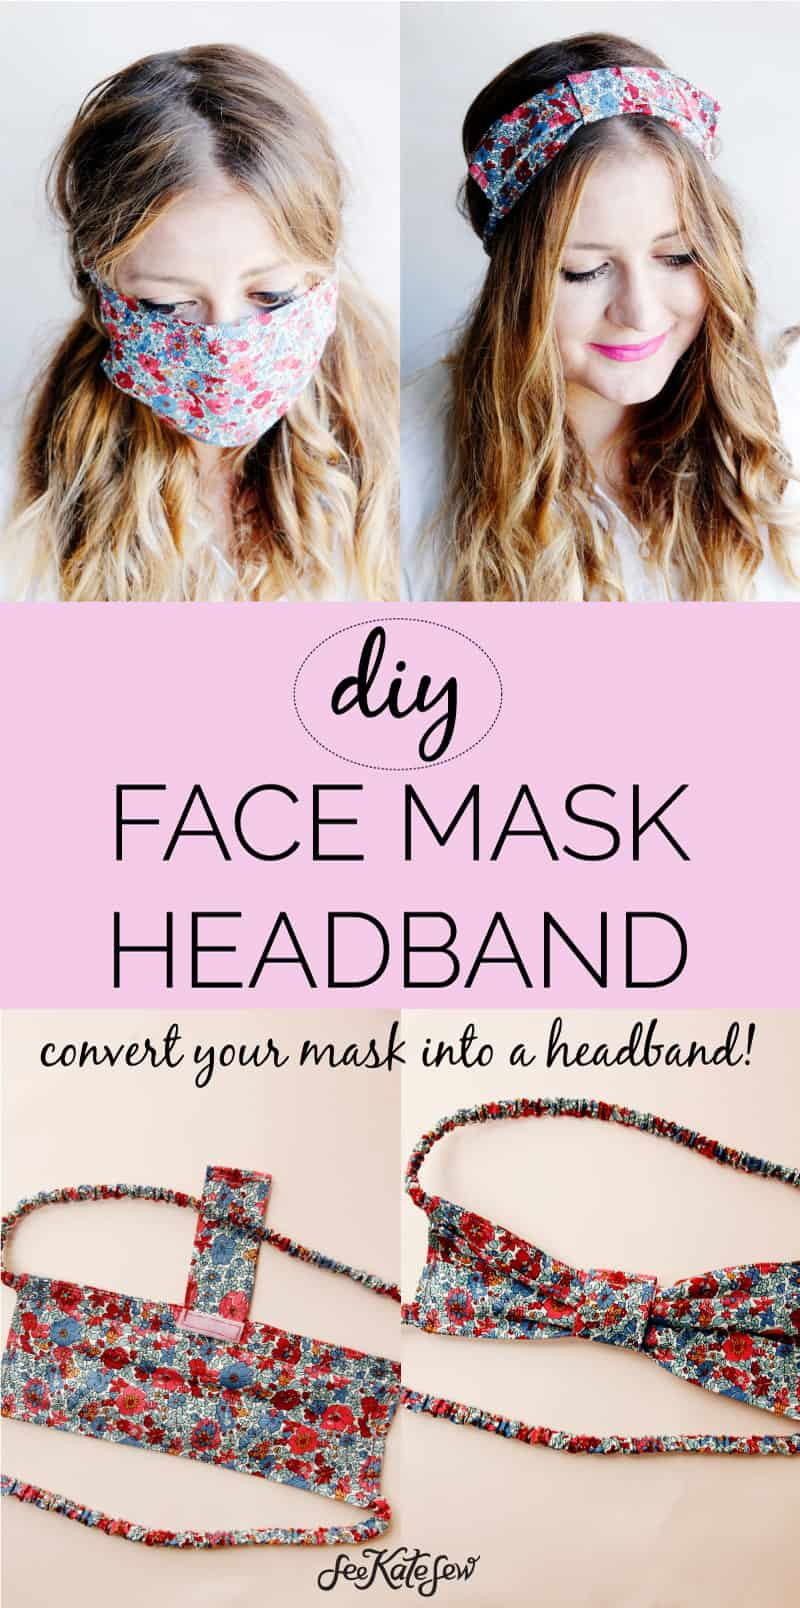 Always have your face mask handy - make a mask that you can wear as a headband!